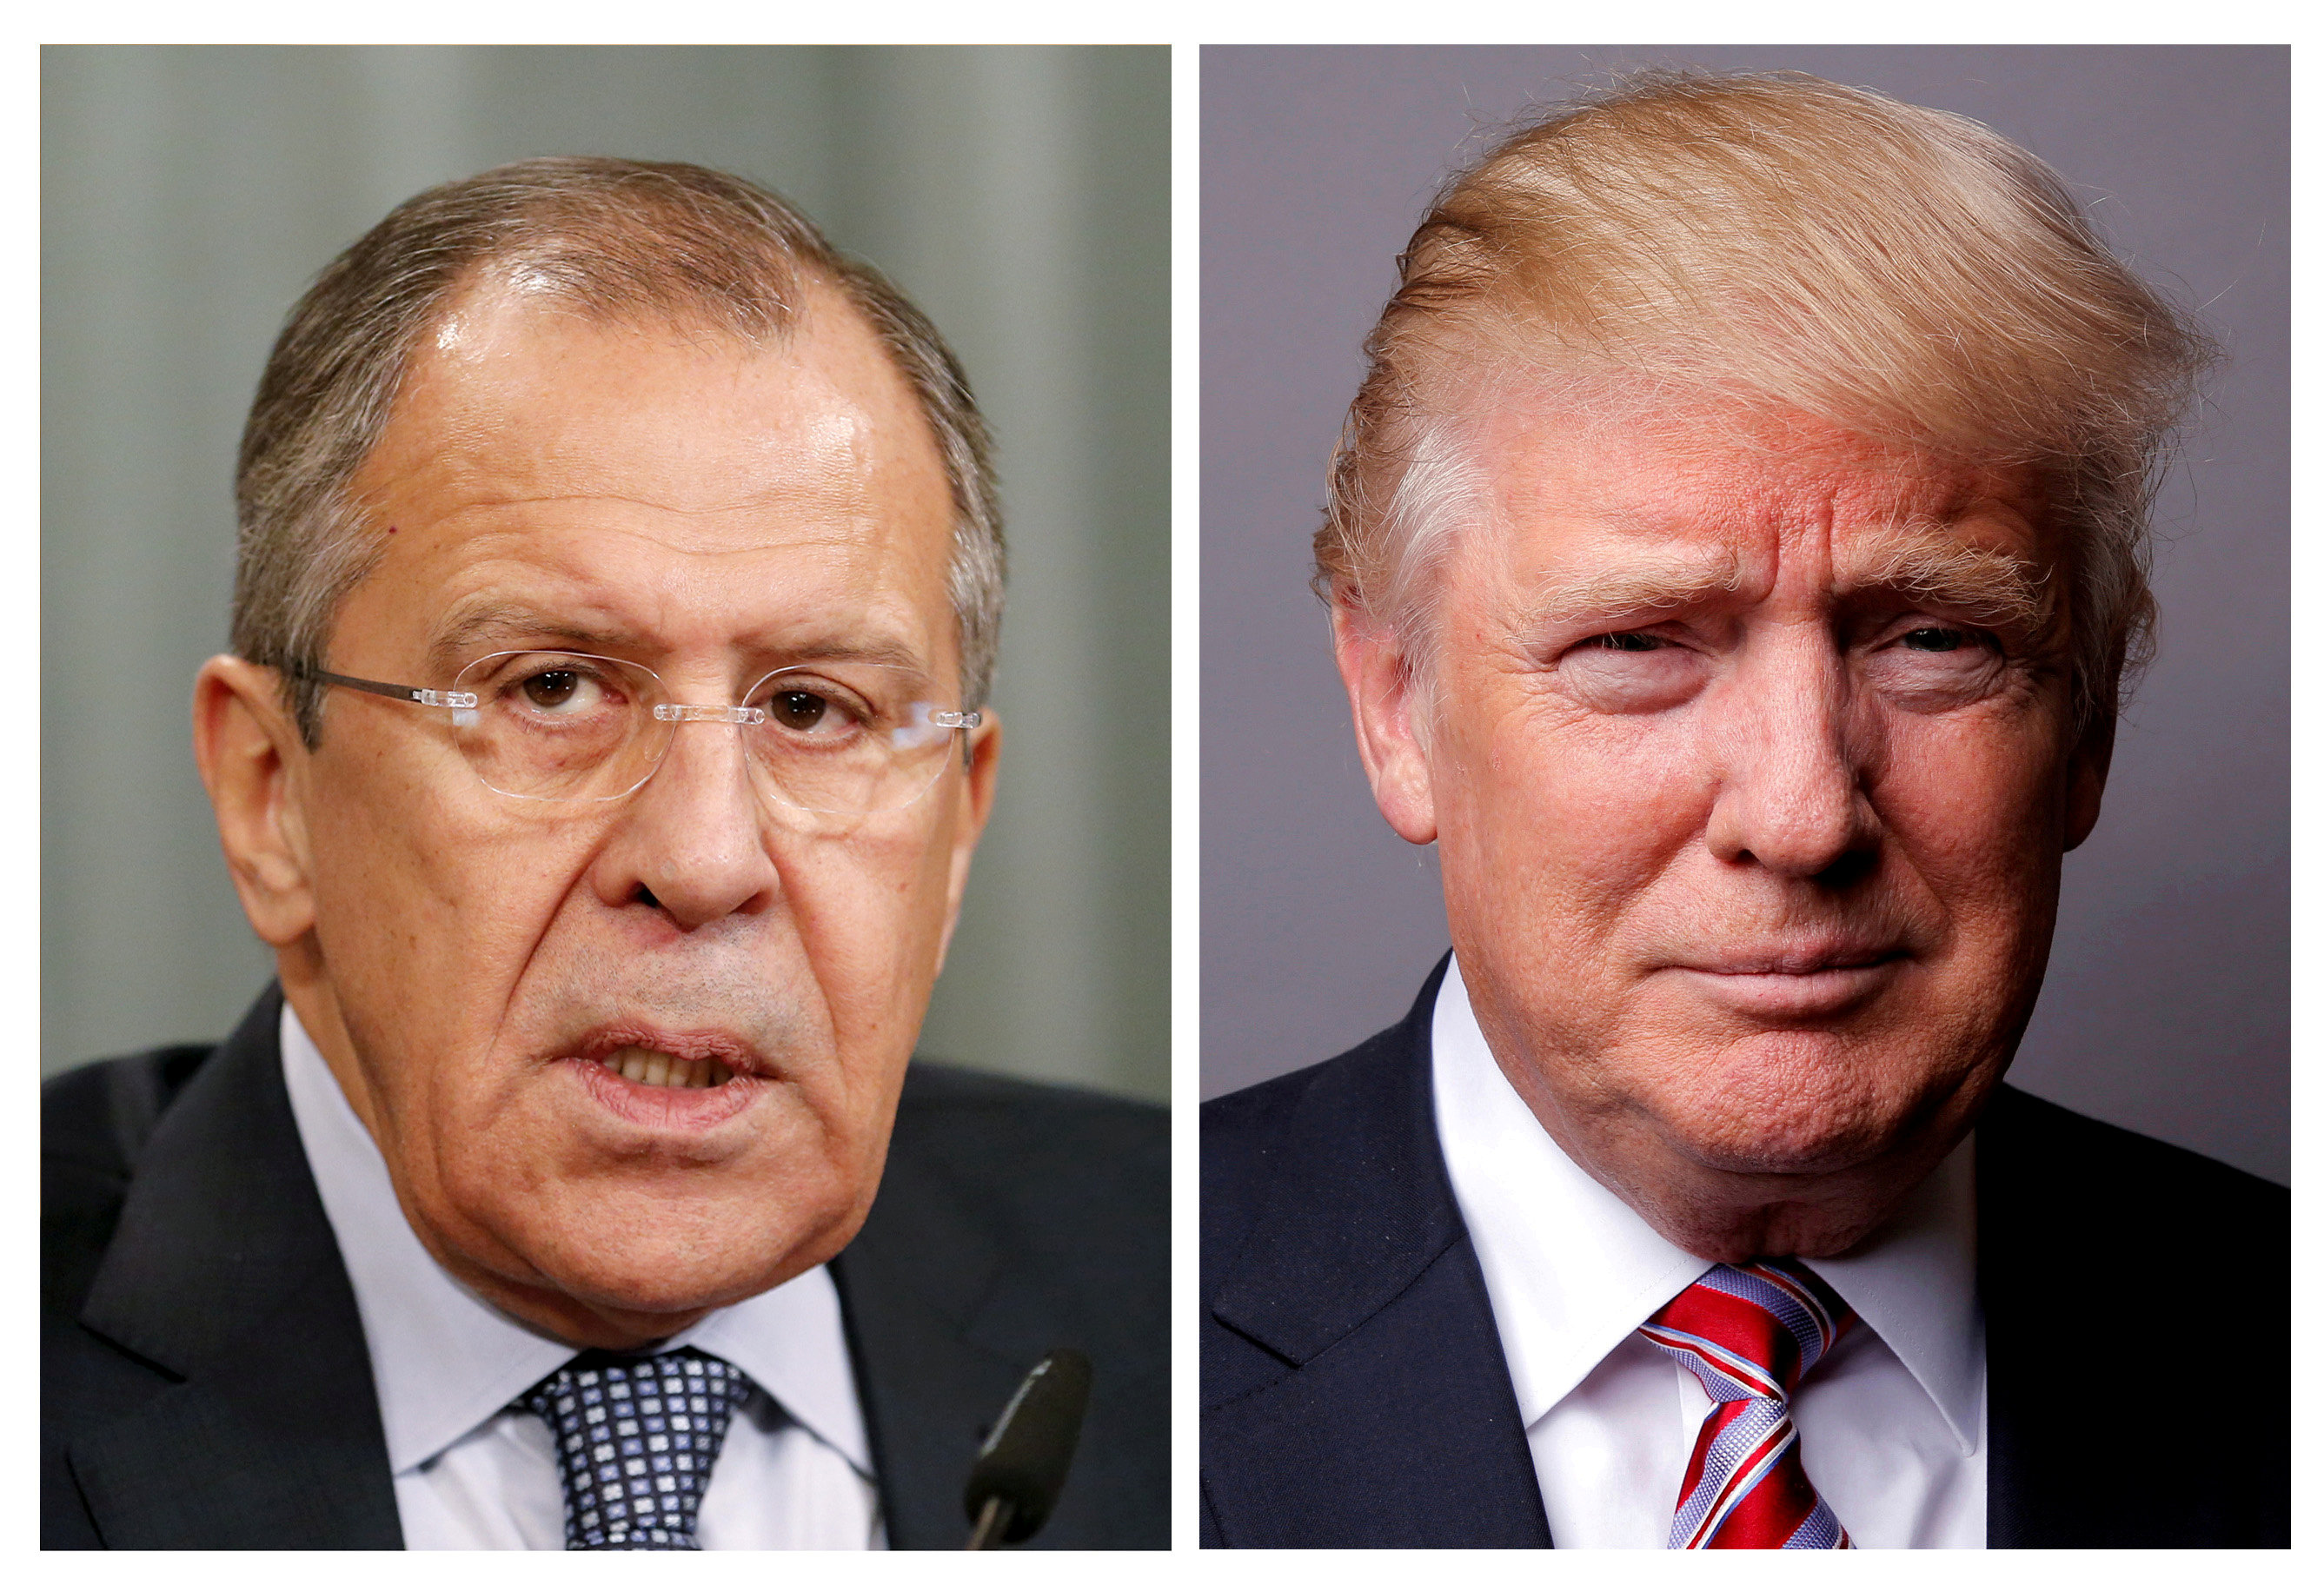 FILE PHOTO: A combination of file photos showing Russian Foreign Minister Sergei Lavrov attending a news conference in Moscow, Russia, November 18, 2015, and U.S. President Donald Trump posing for a photo in New York City, U.S., May 17, 2016. REUTERS/Maxim Zmeyev/Lucas Jackson/File Photos